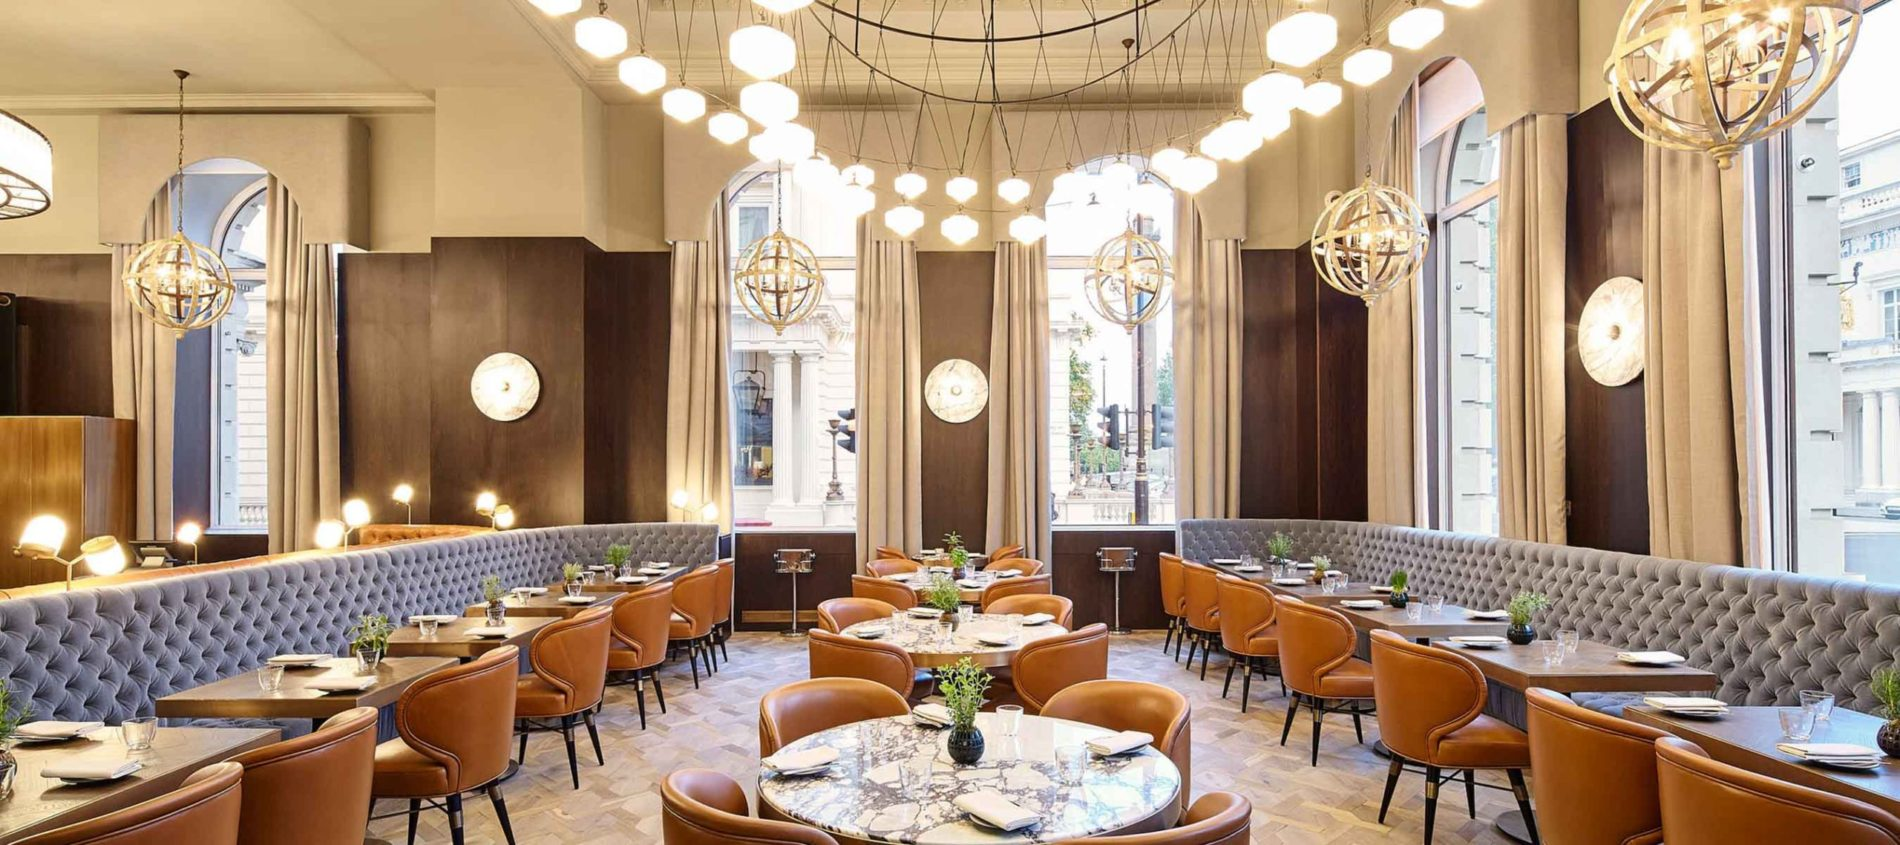 Large room high ceilings two pale blue banquettes opposite toffee leather chairs in restaurant